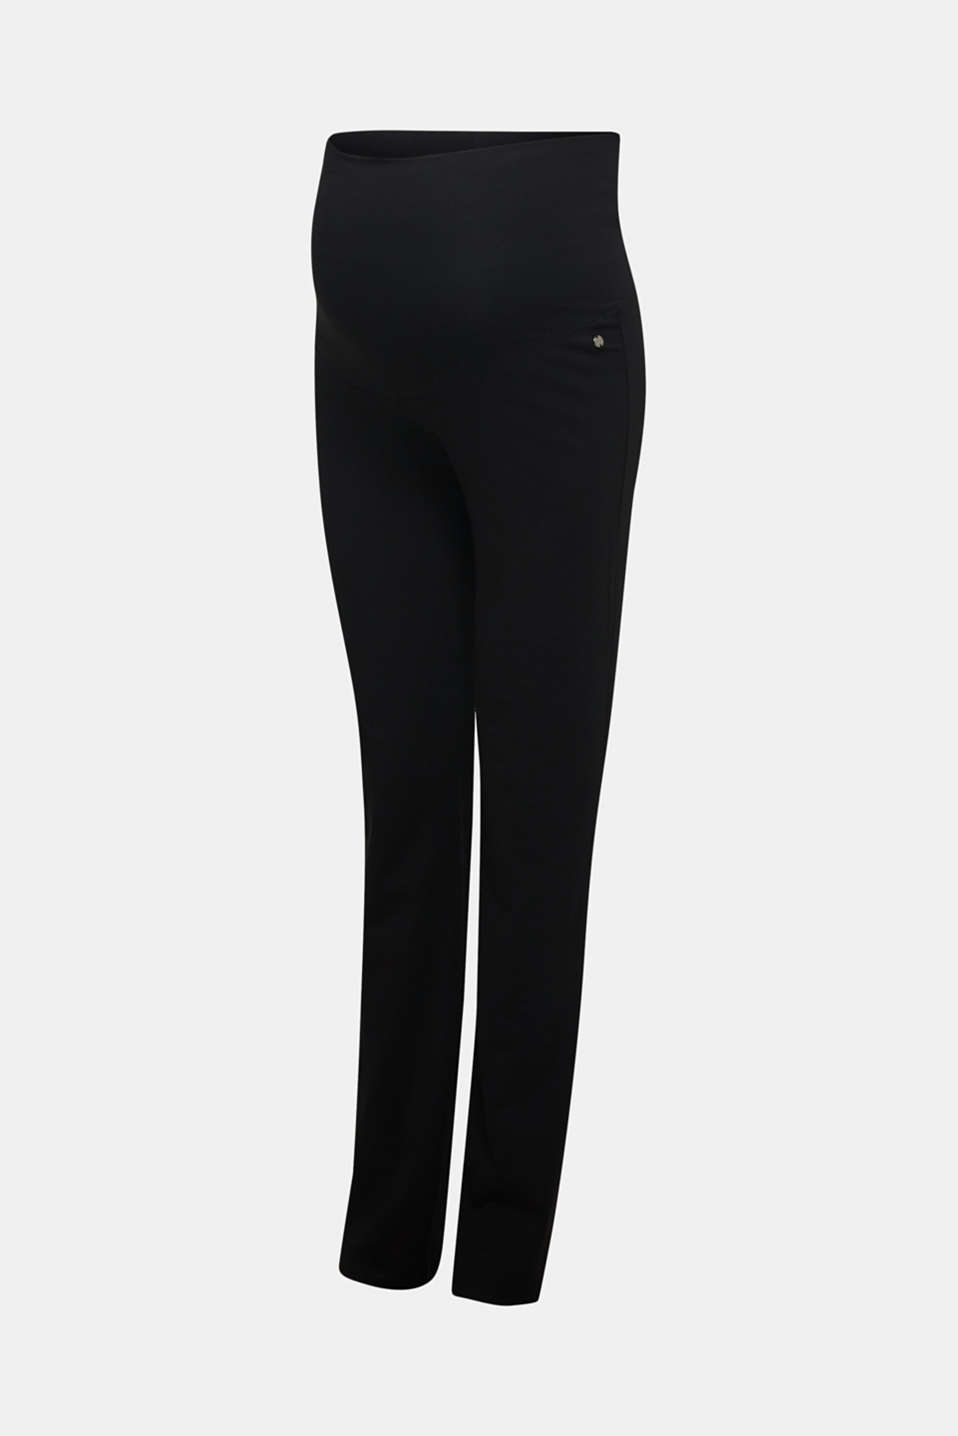 Stretch jersey trousers with an over-bump waistband, LCBLACK, detail image number 3